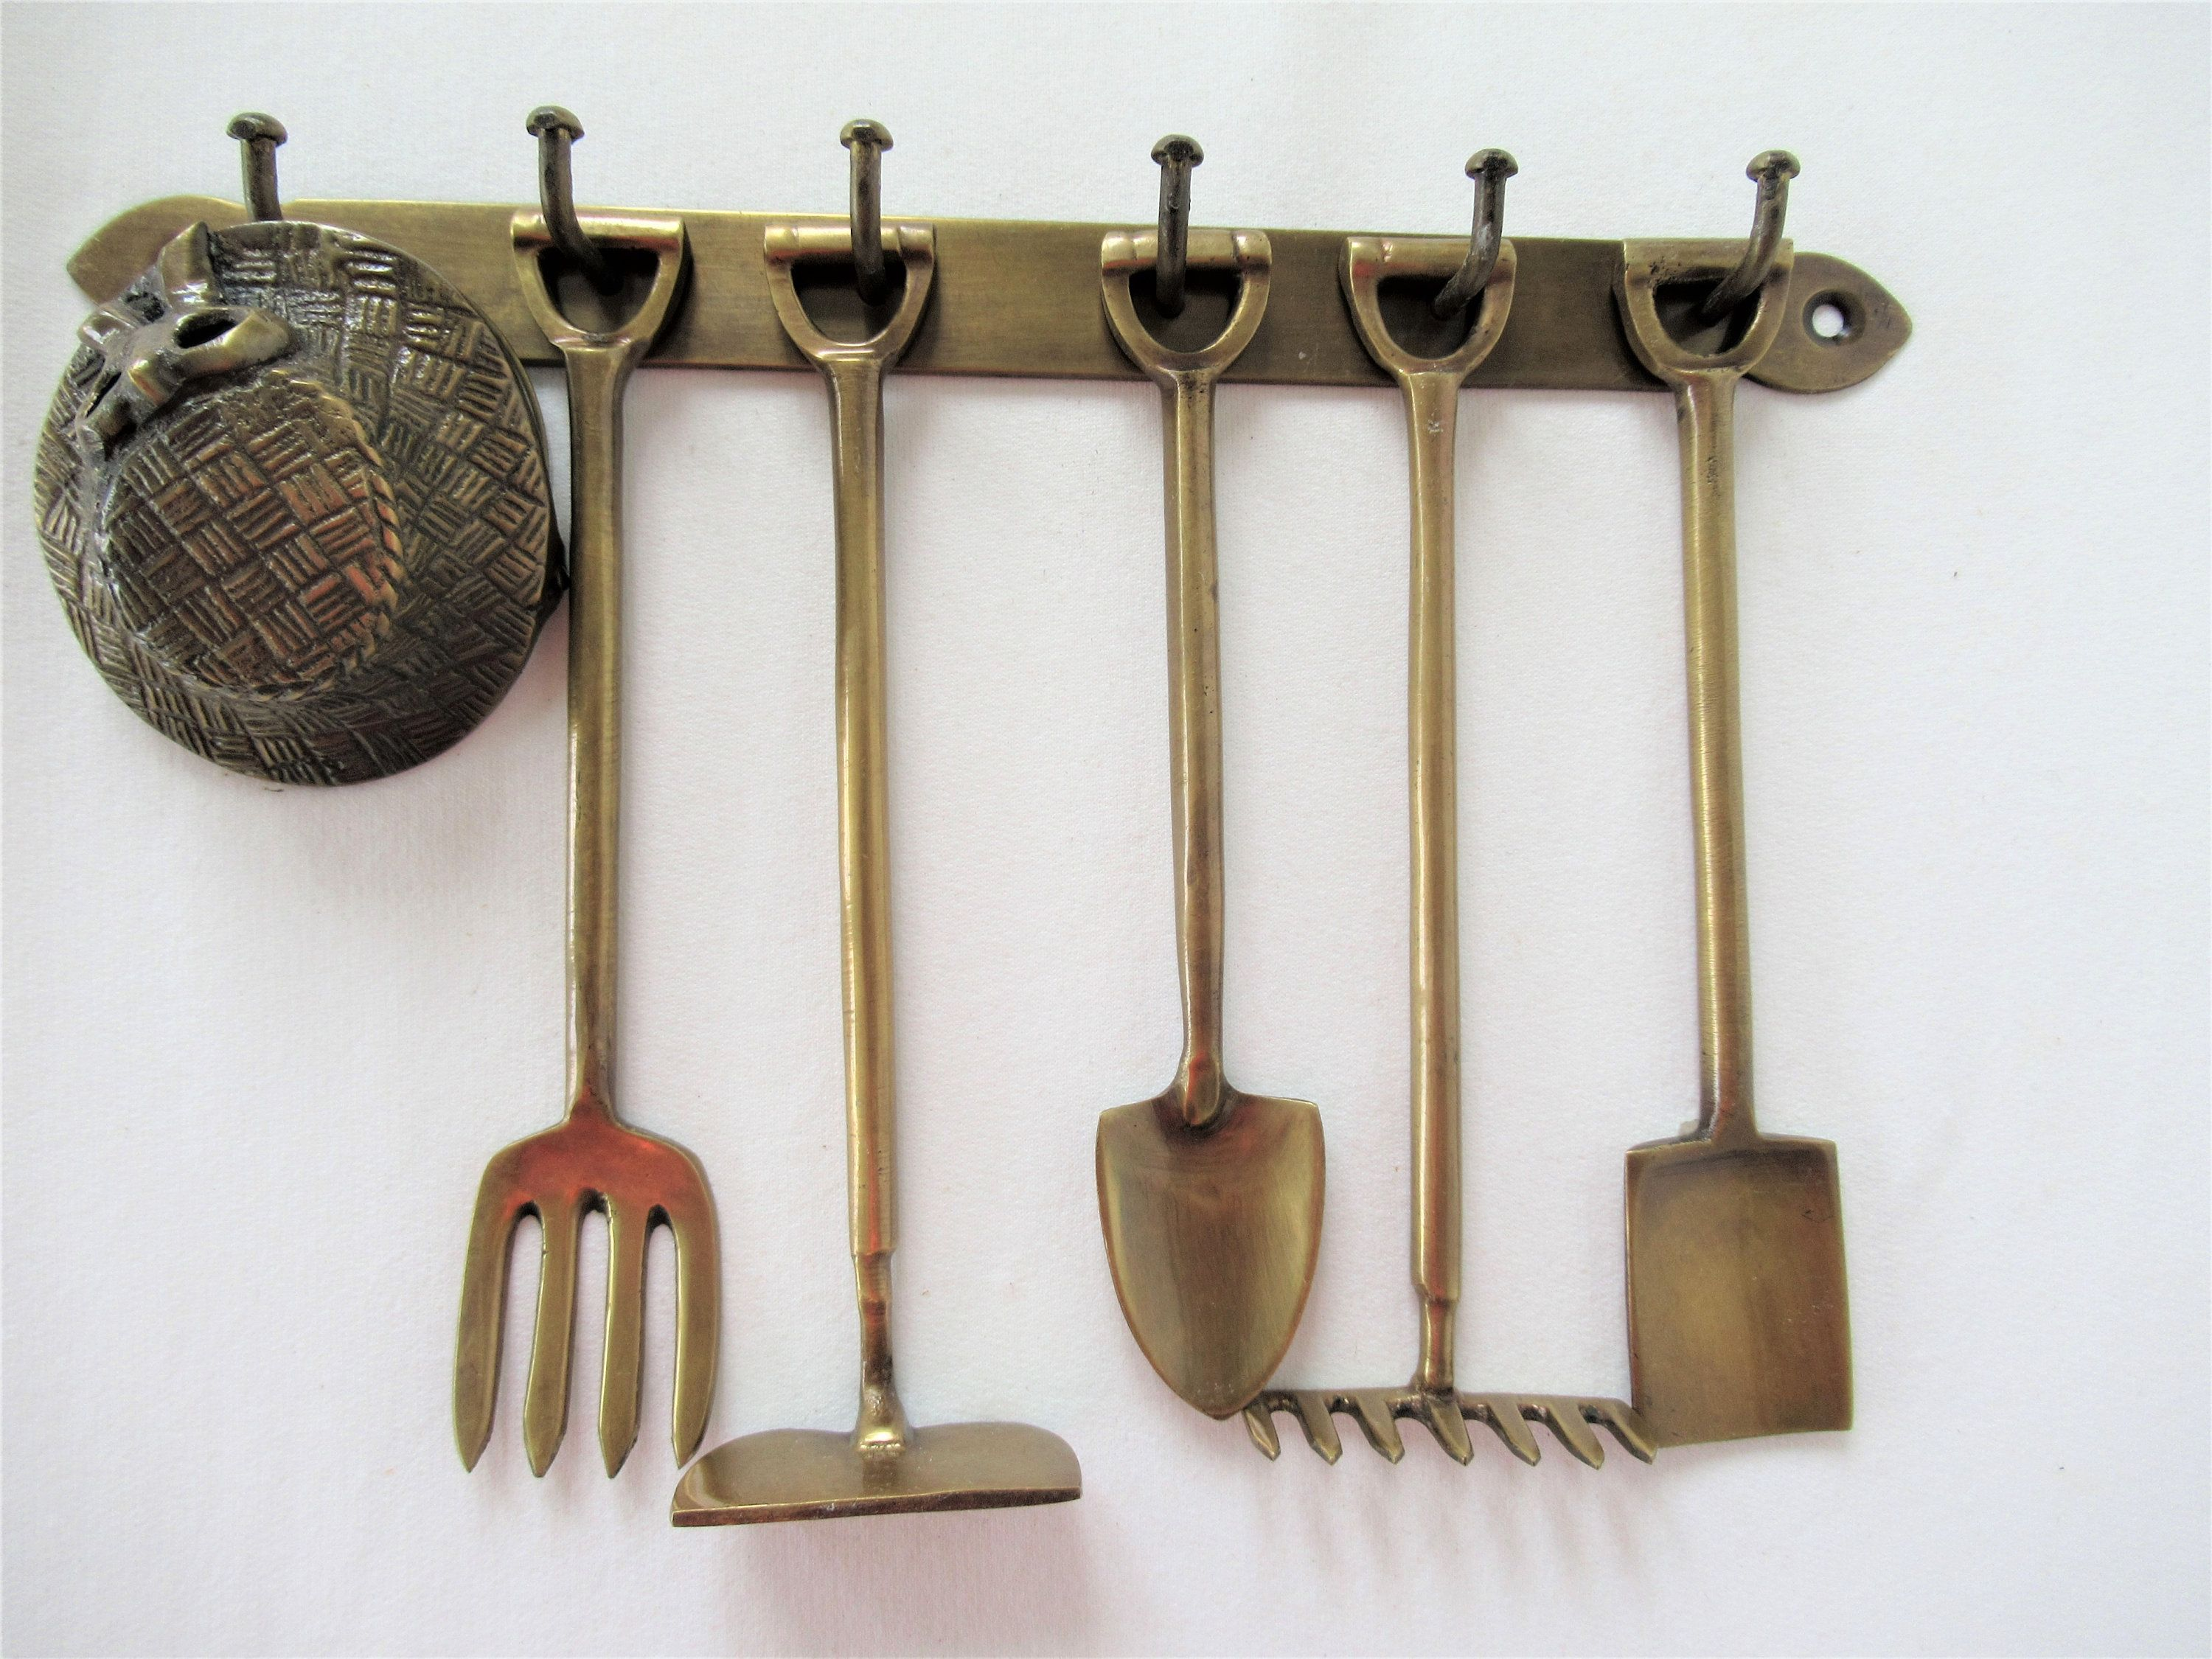 Vintage Small Brass Garden Tools On Brass Rack Made India Hoe